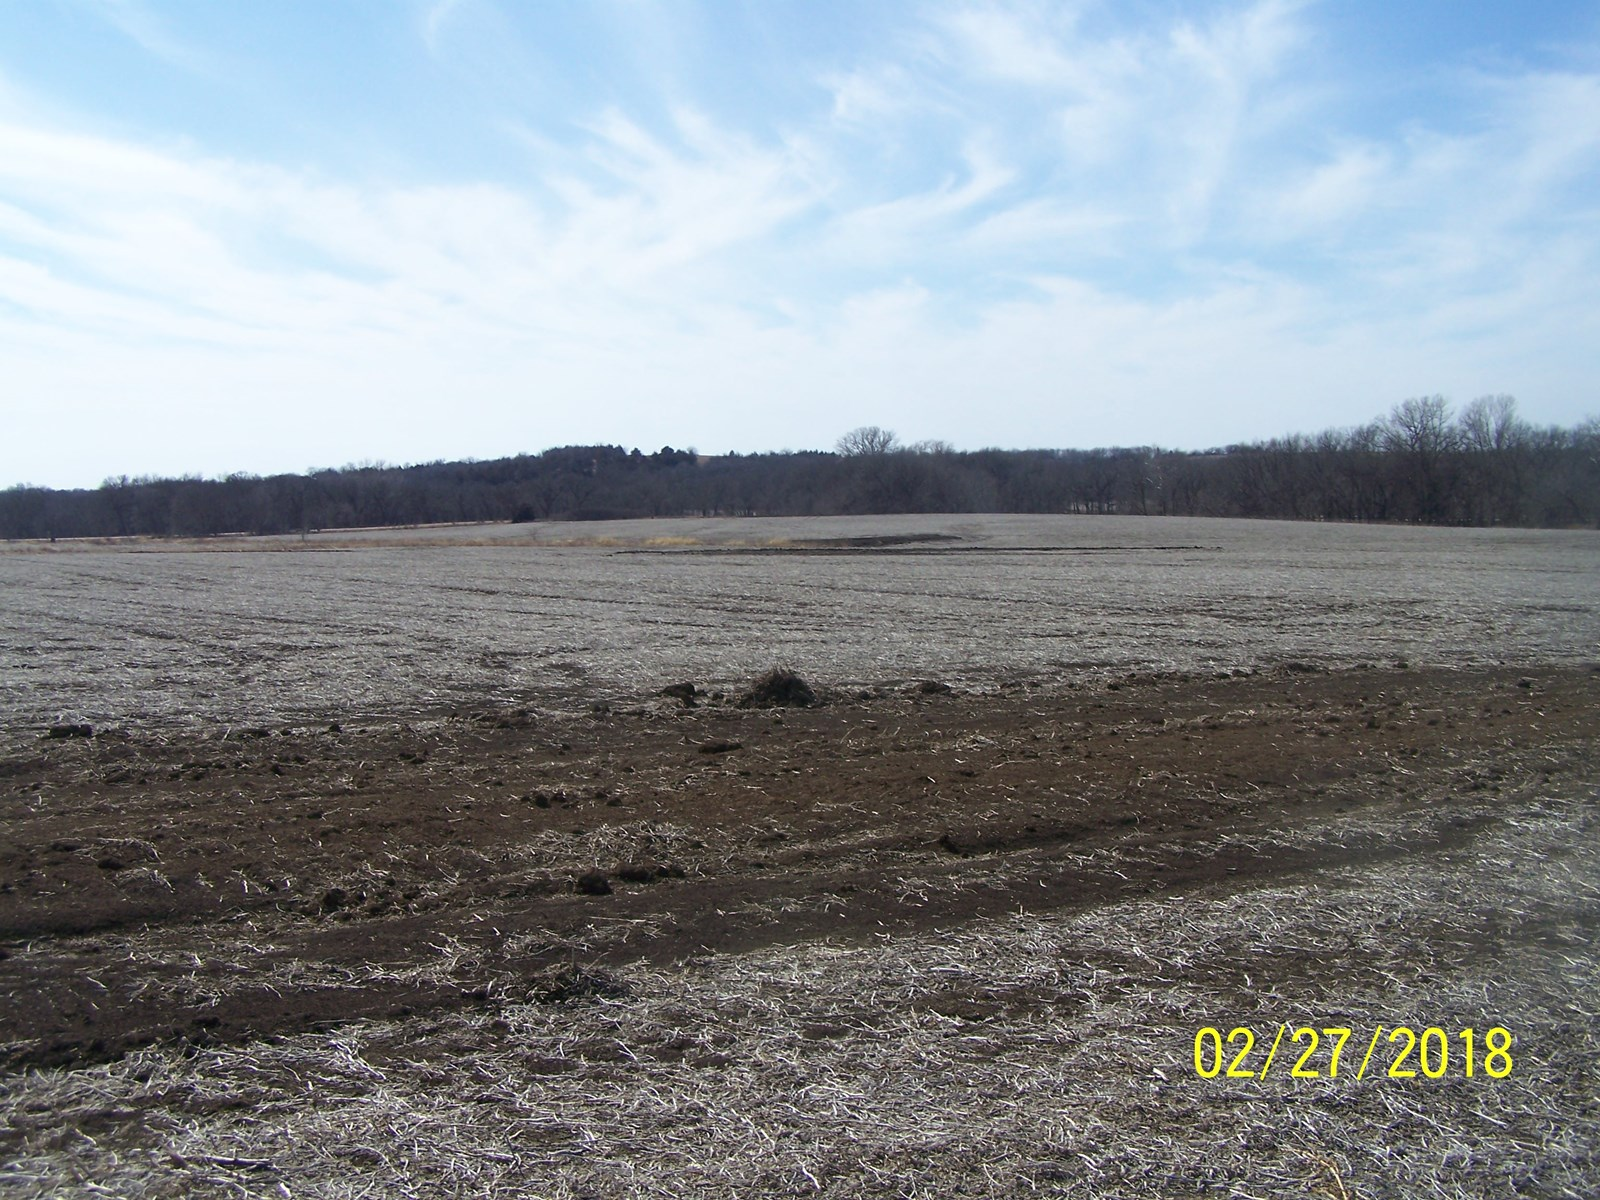 Acreage For Sale In Pottawatomie County